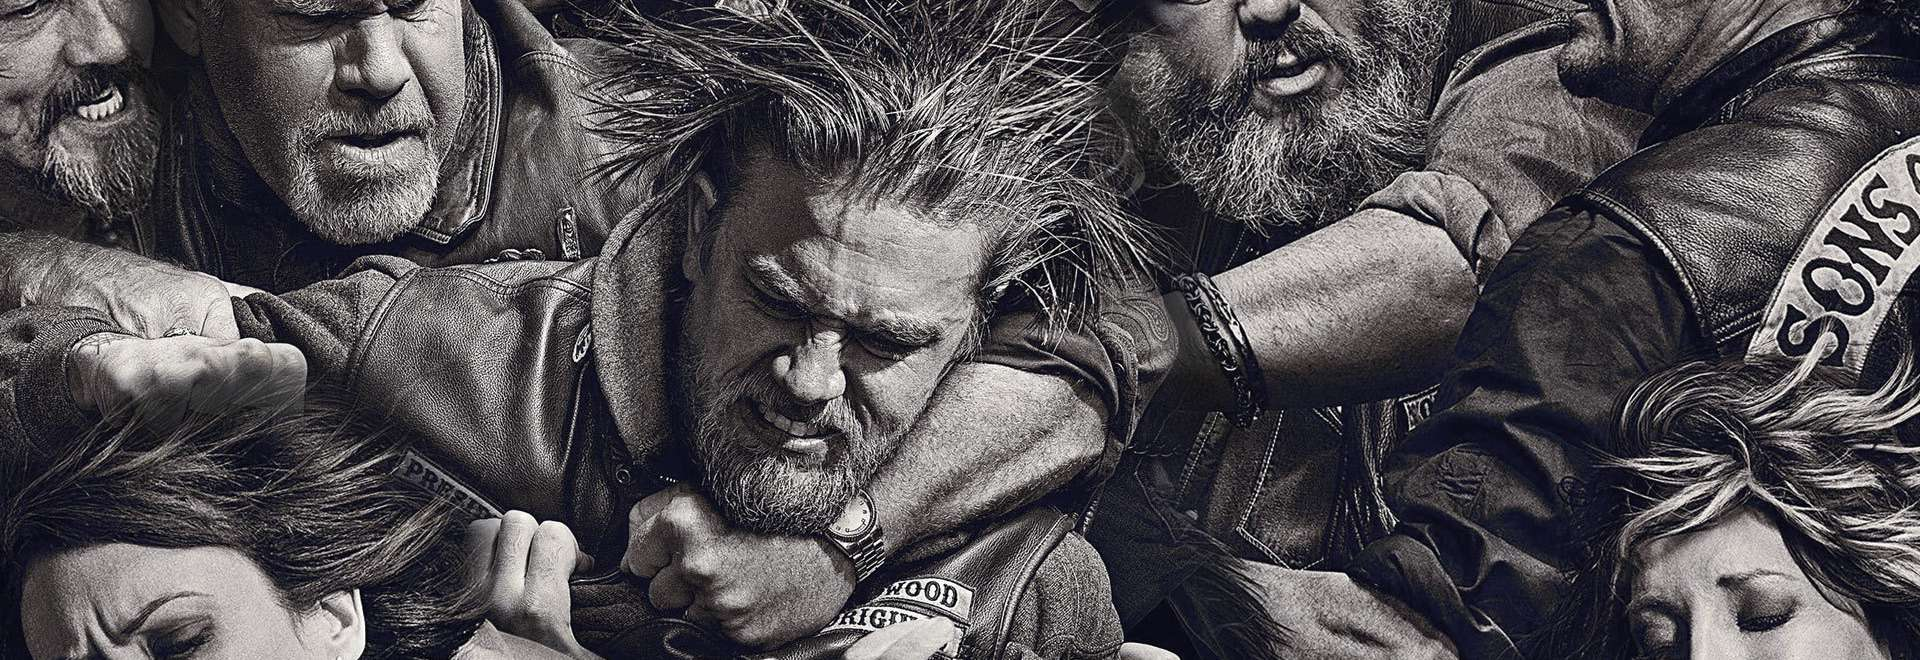 Sons of Anarchy Feature Image